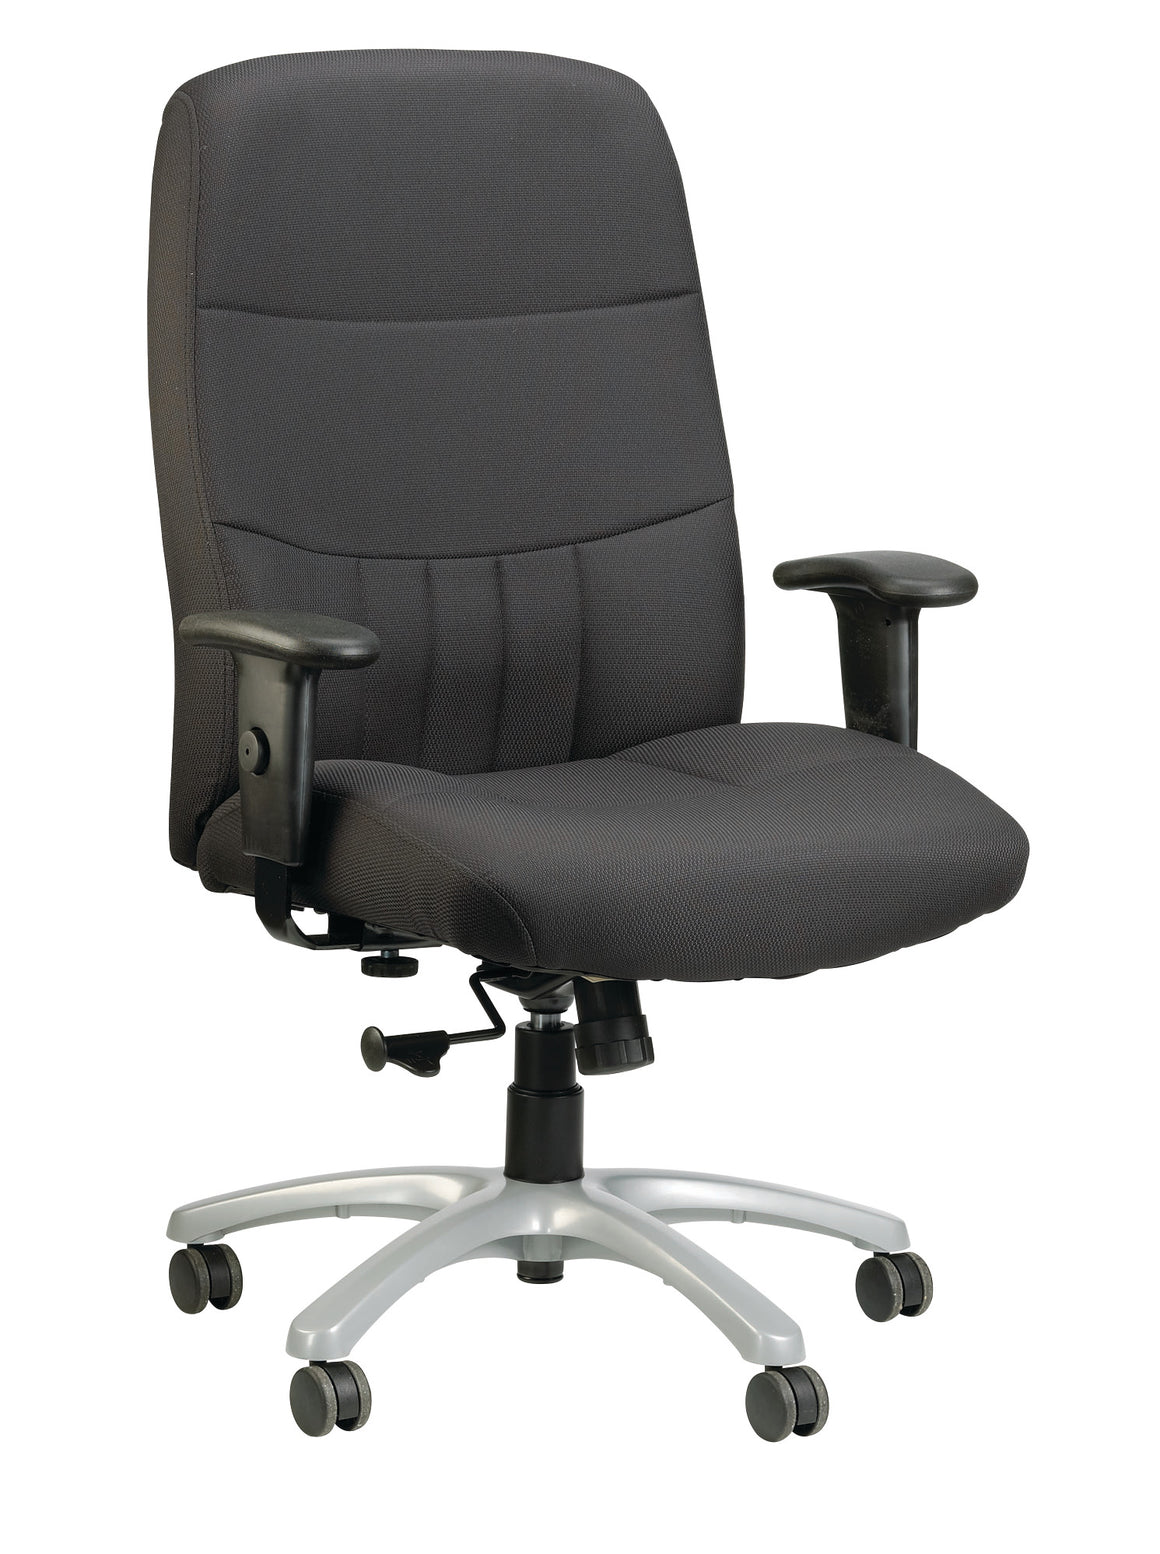 Excelsior 350 Heavy-Duty Office Chair - taylor ray decor